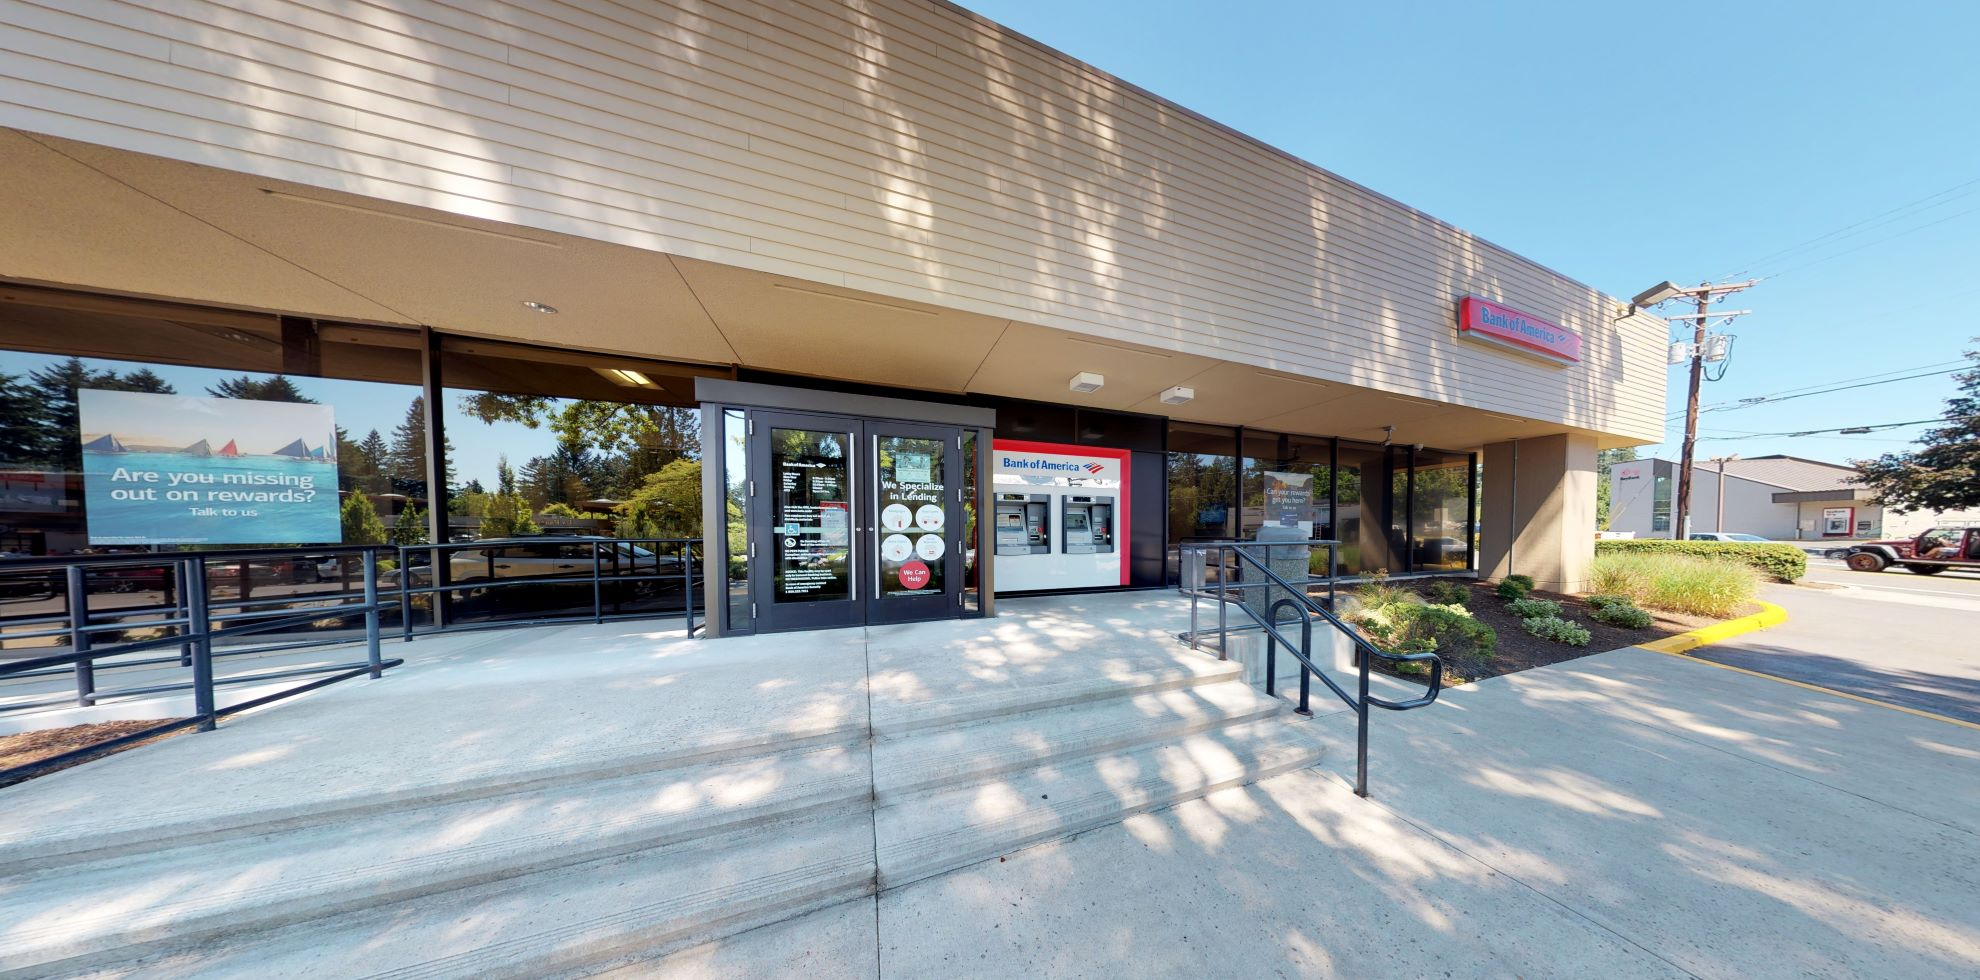 Bank of America financial center with drive-thru ATM | 16209 Bryant Rd, Lake Oswego, OR 97035